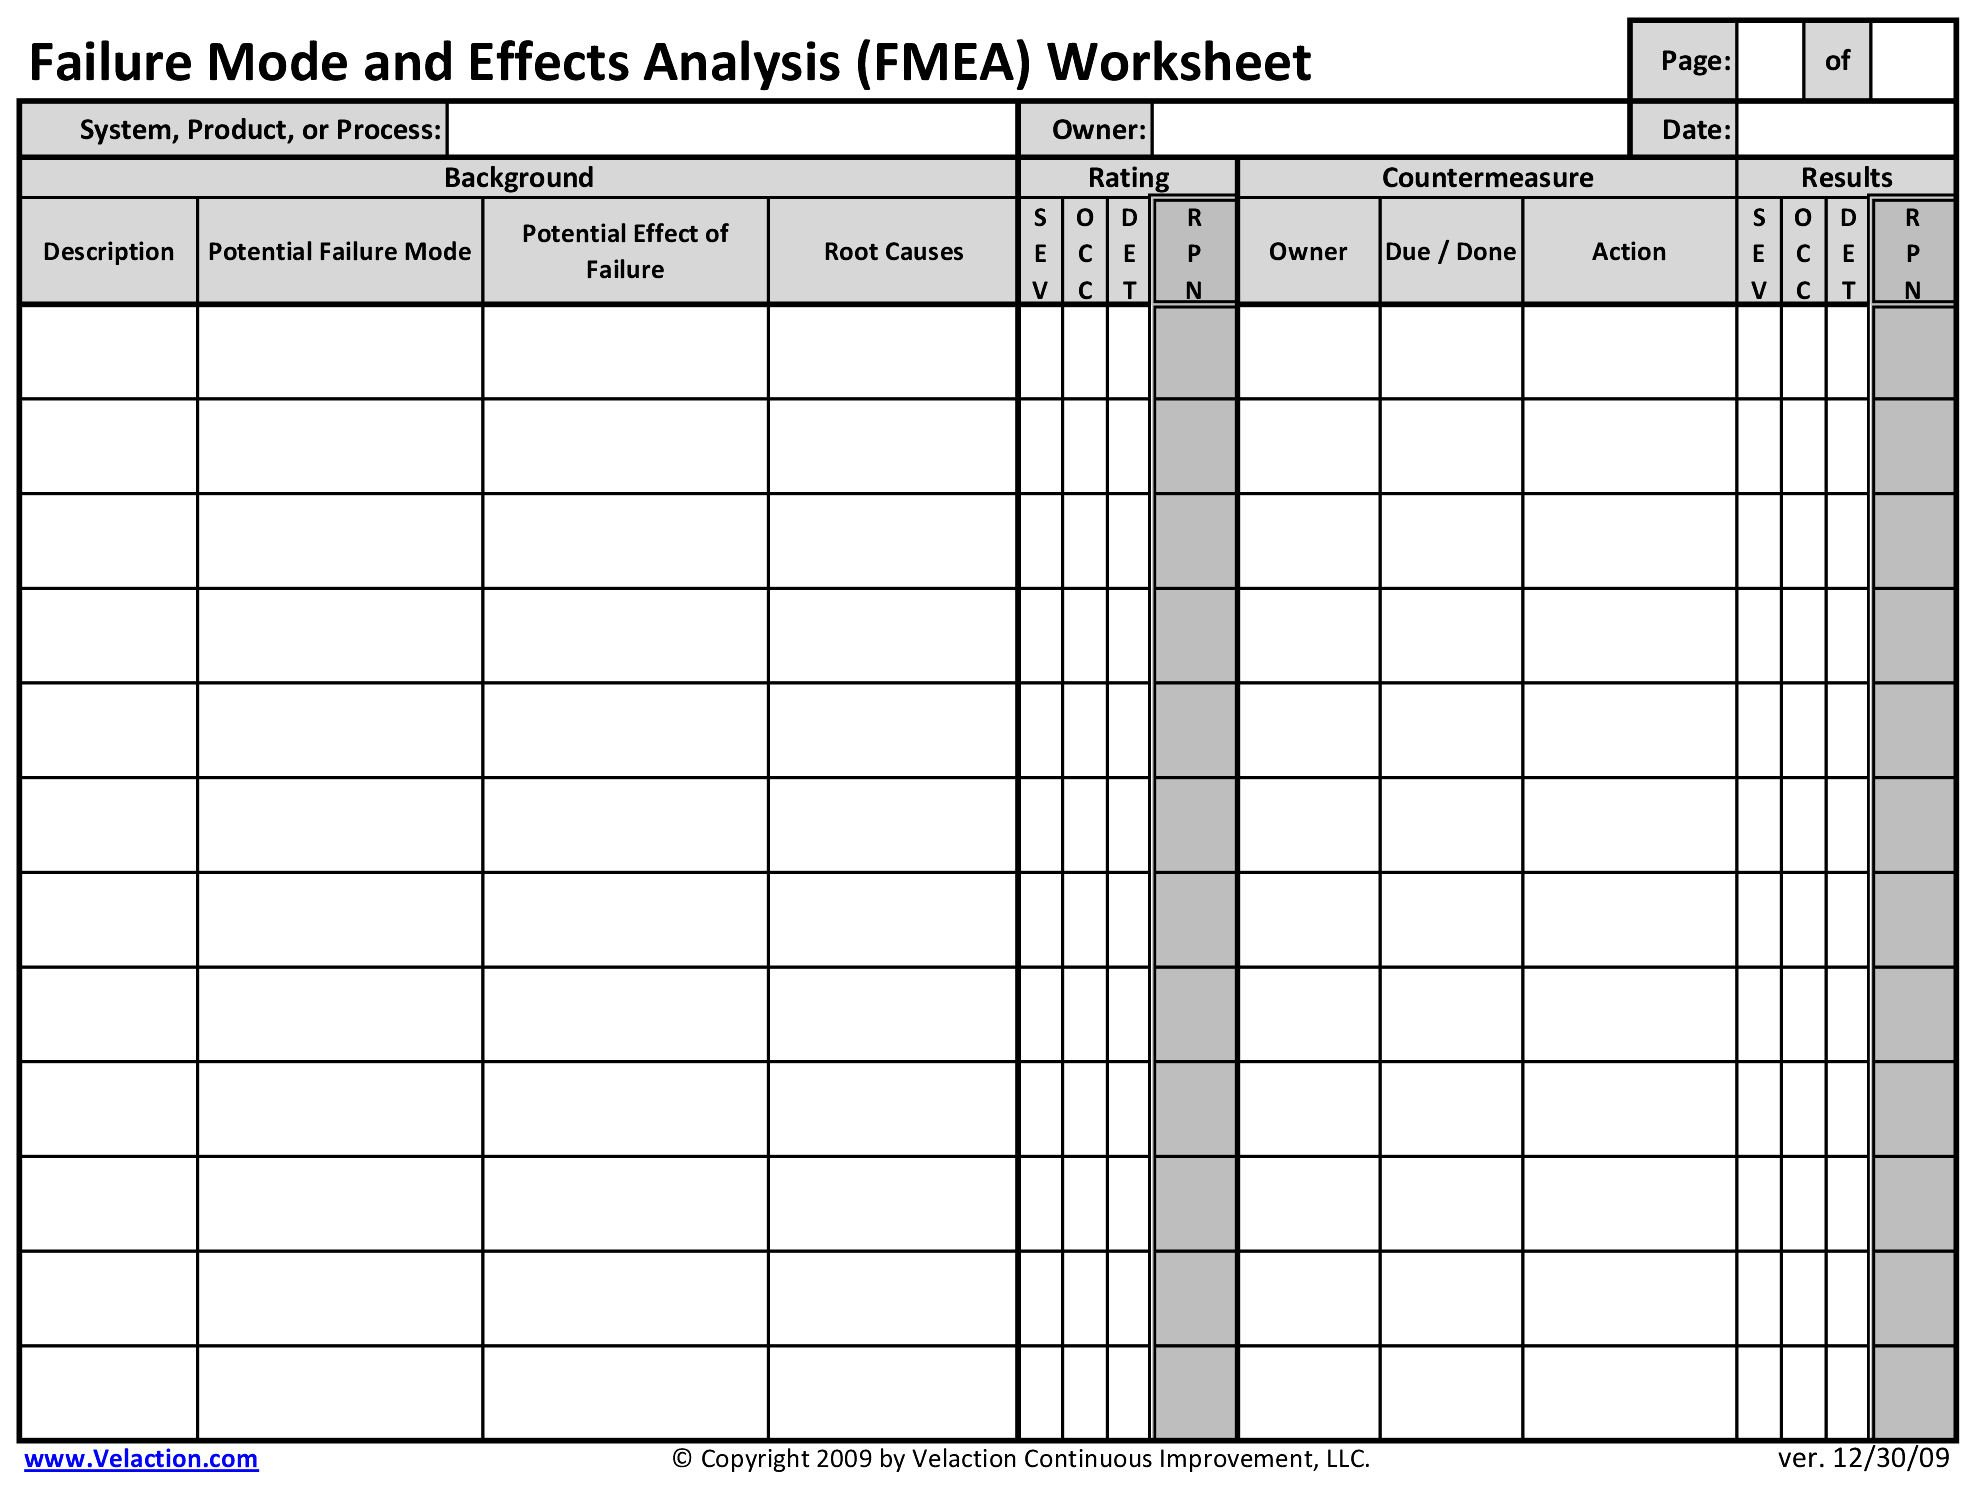 Fmea Worksheet Failure Mode And Effects Analysis Worksheet For Fmea Sample Worksheet